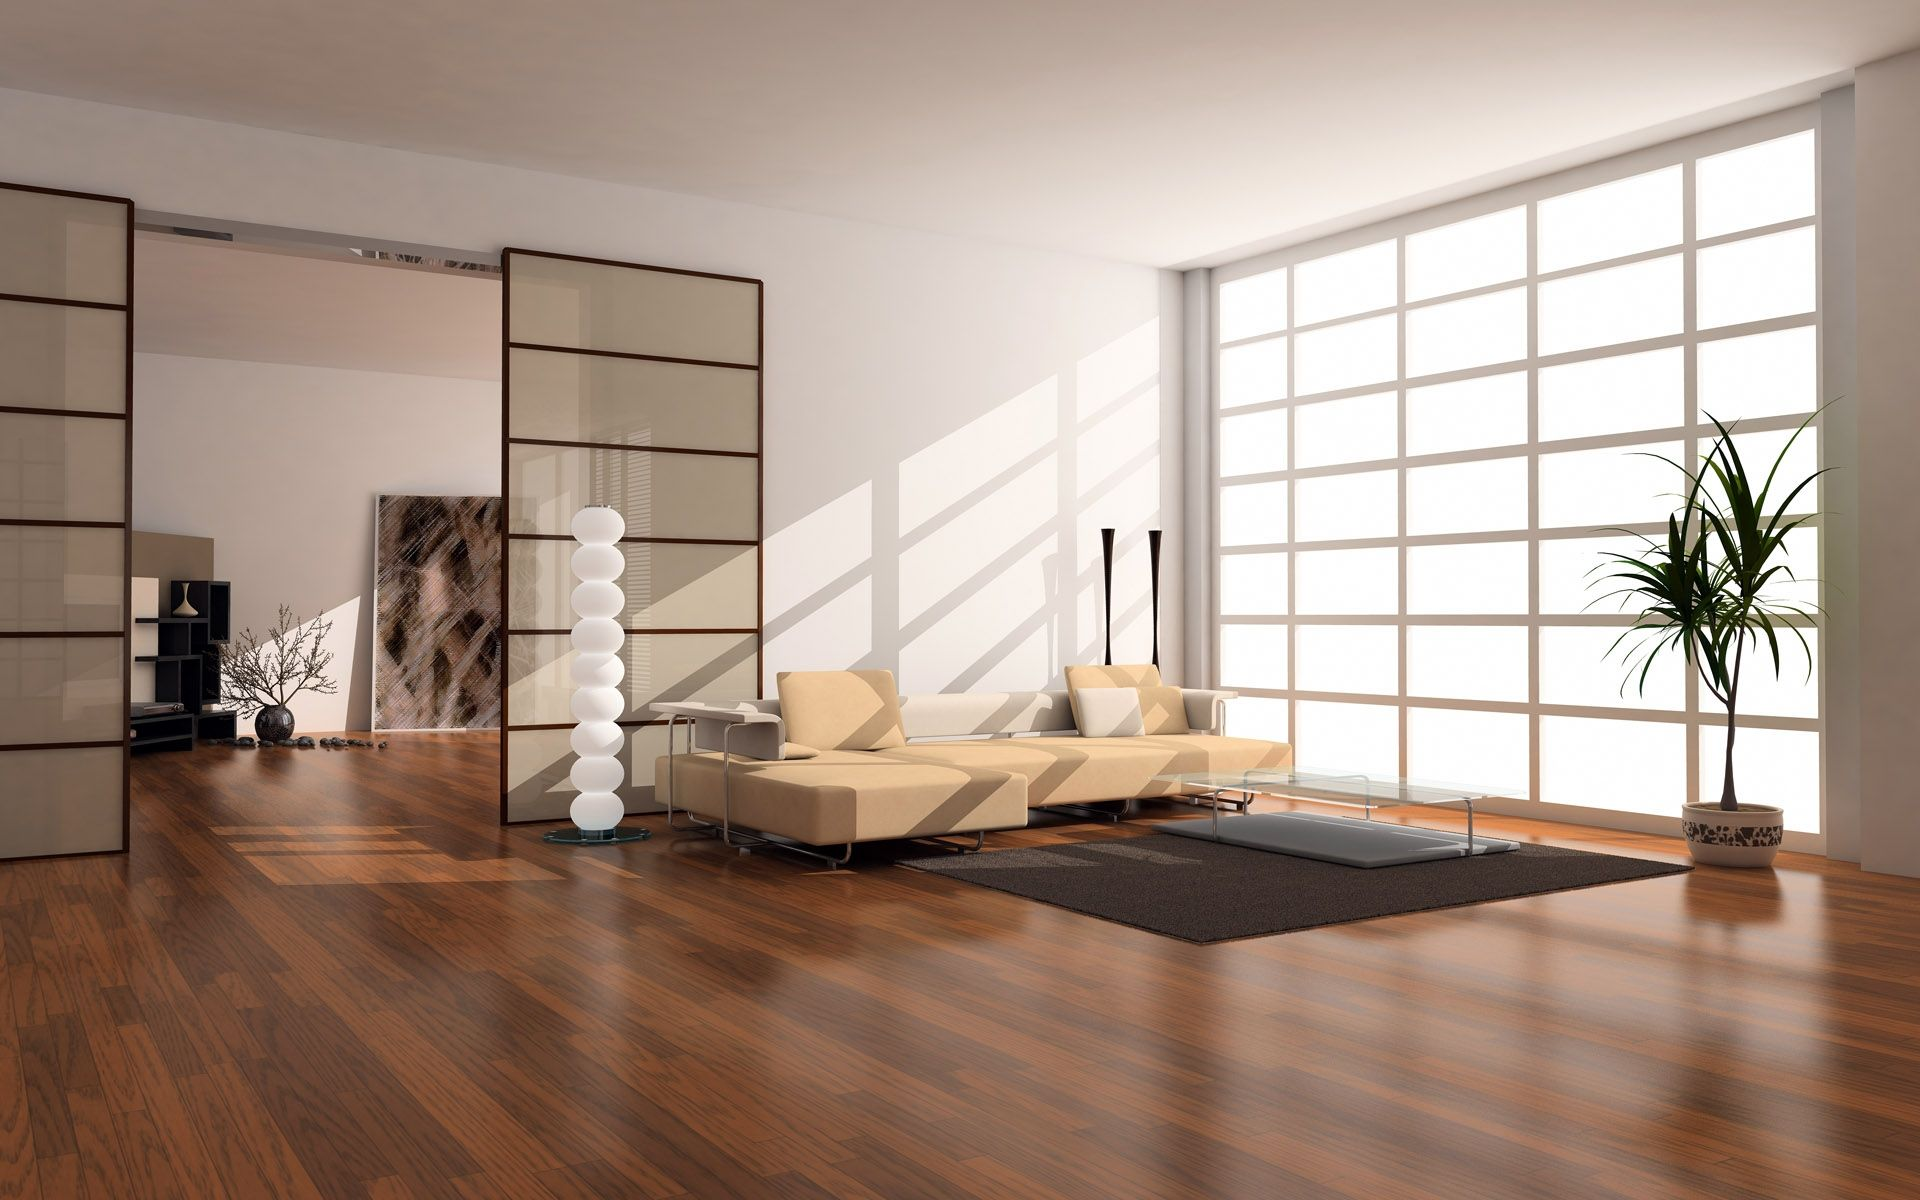 Japanese Apartment Design japan style apartment beige couch shiny wood floors create warm